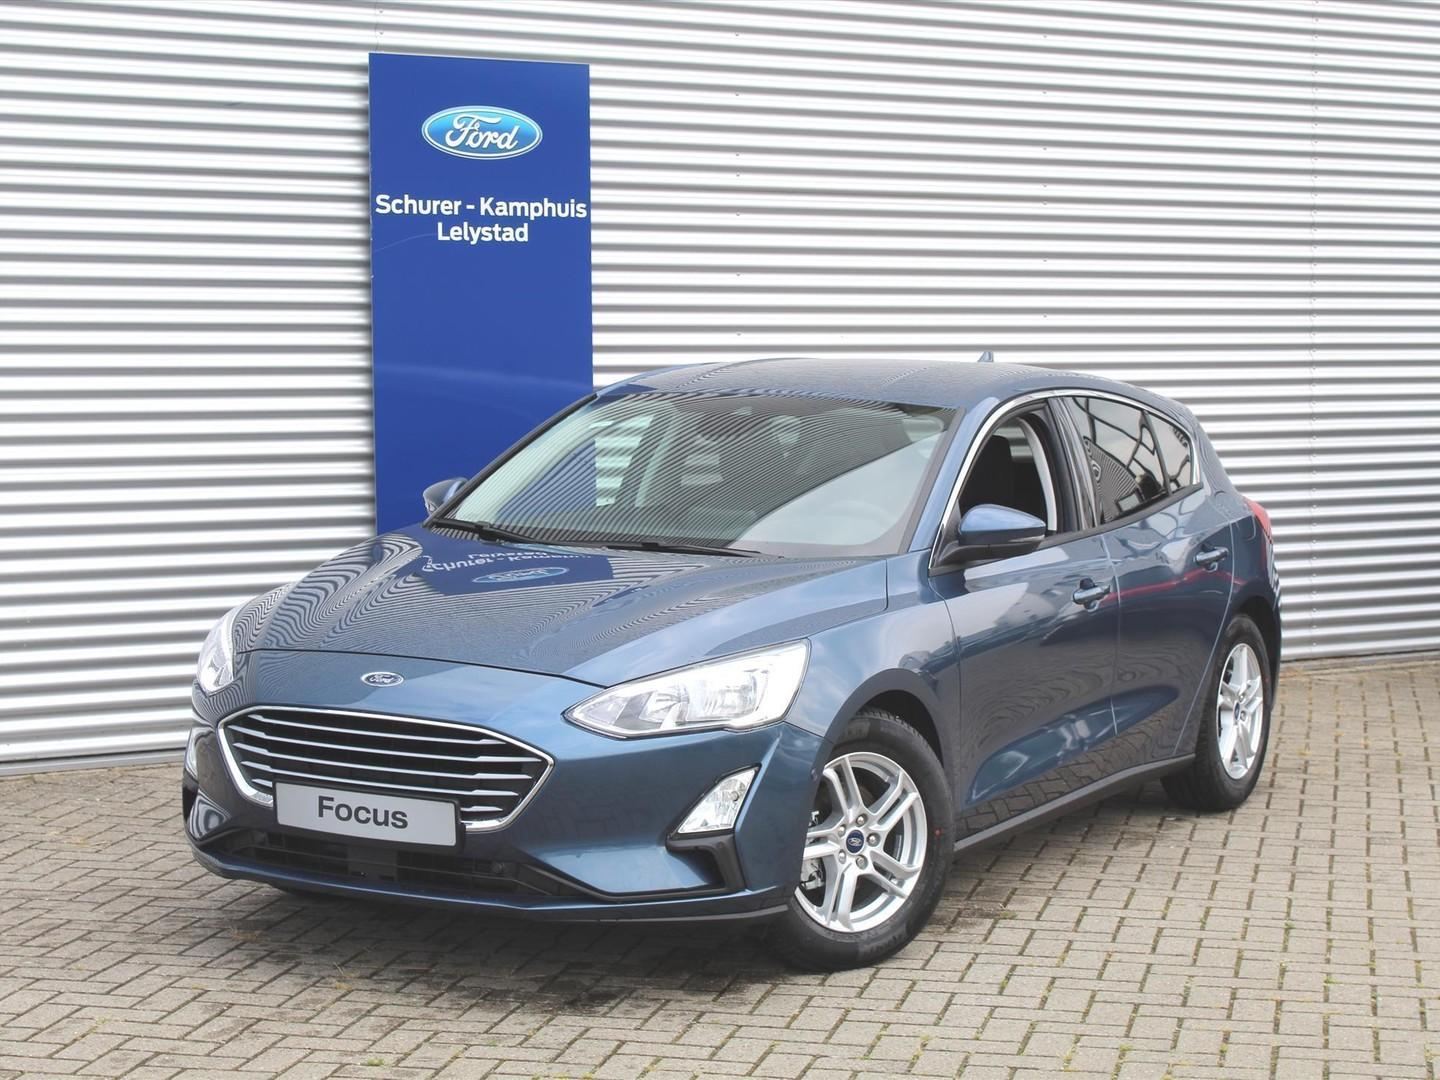 Ford Focus 1.0 ecob. (100pk) trend business winter pack